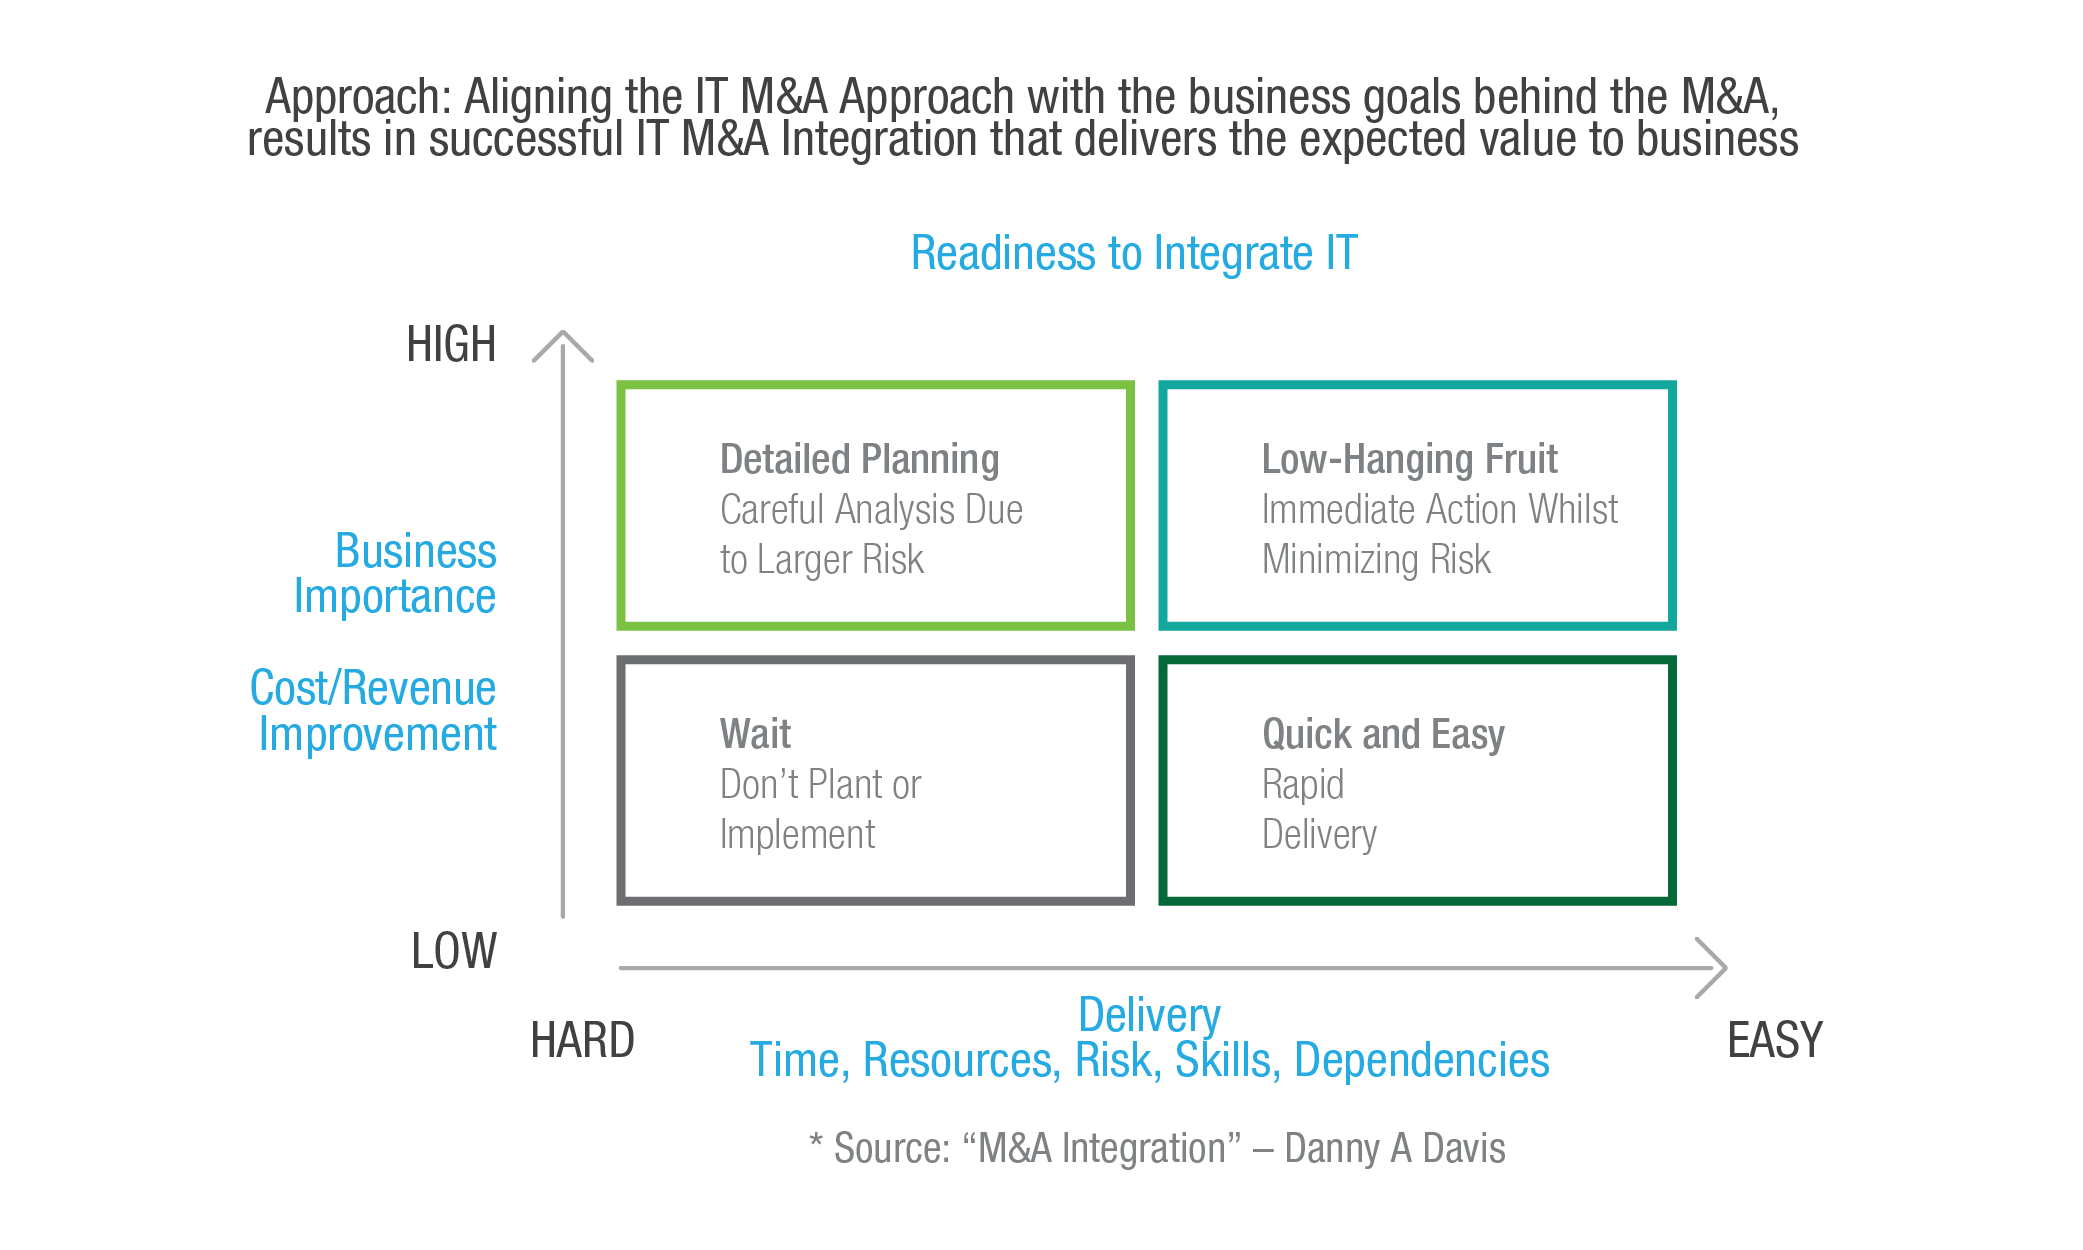 IT Mergers and Acquisitions Integration delivers expected value to business